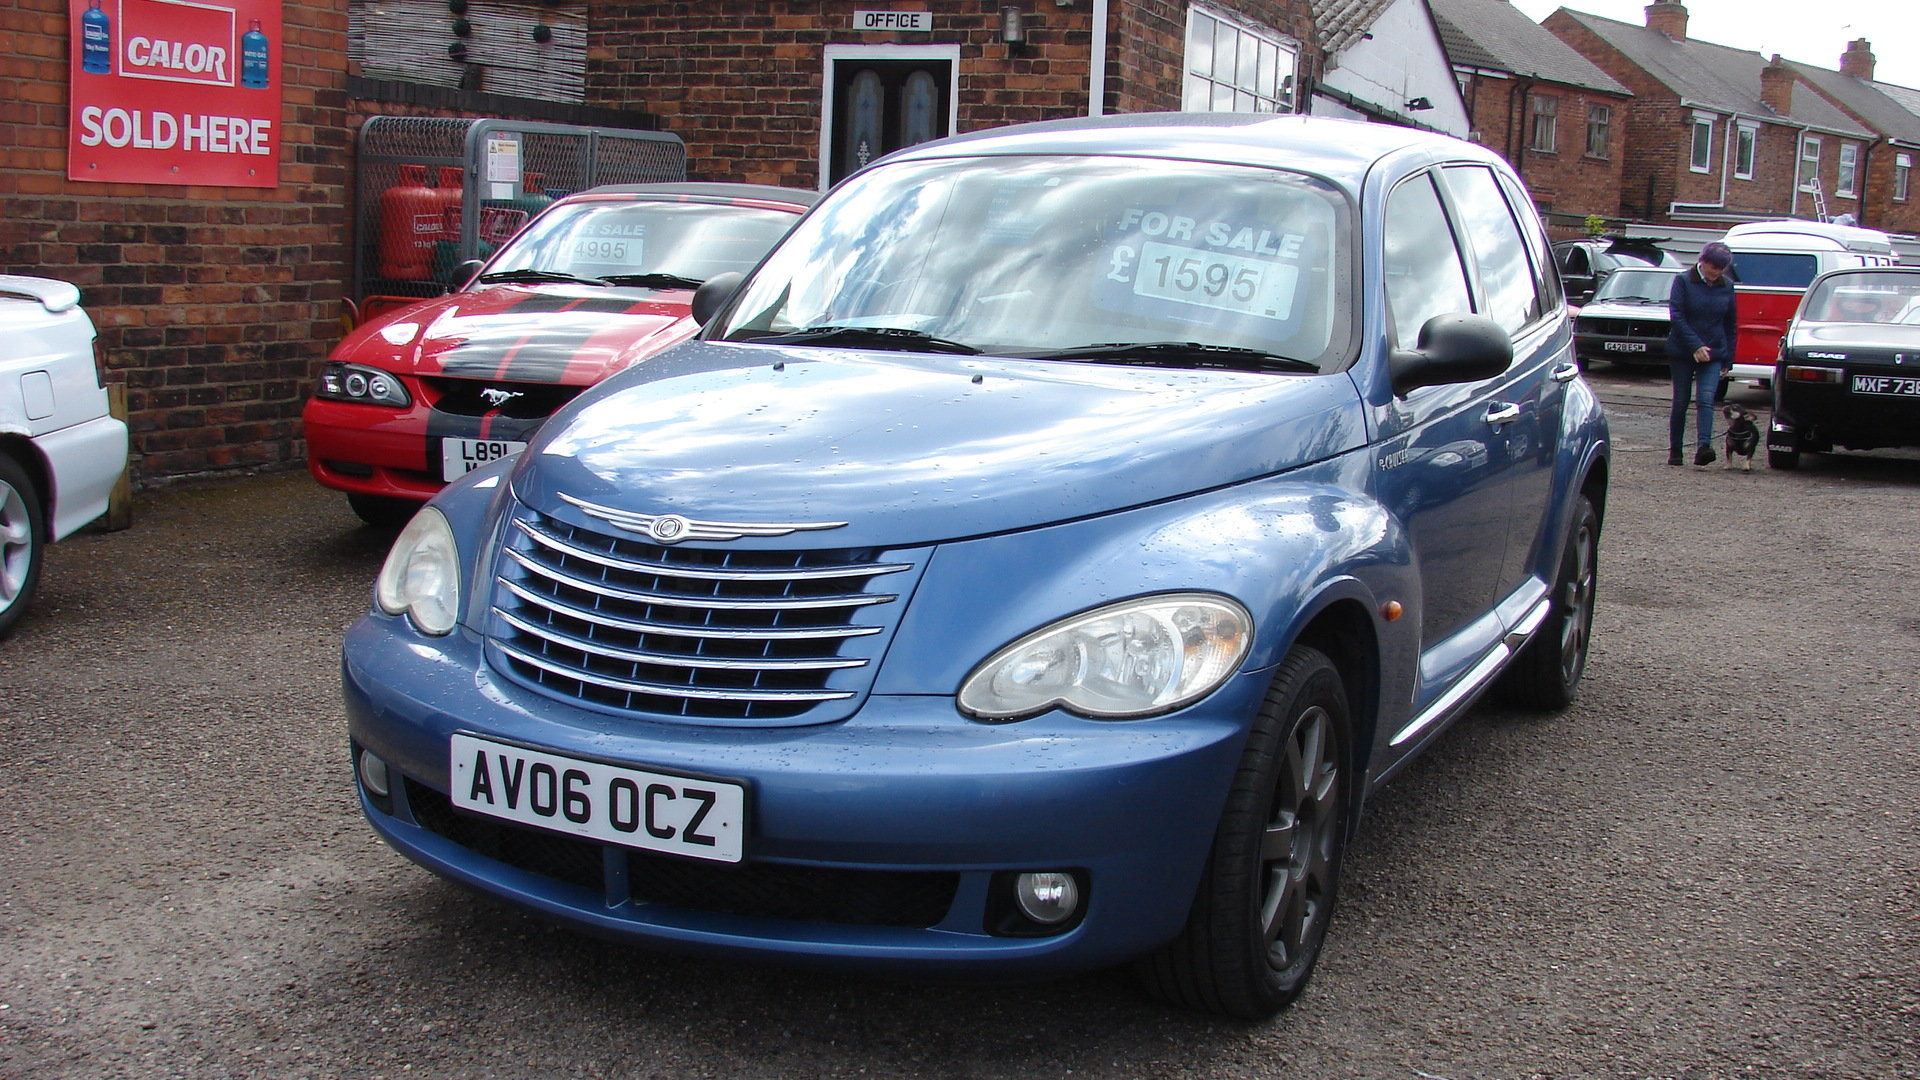 2006 PT Cruiser retro ride with new car drive For Sale (picture 1 of 6)